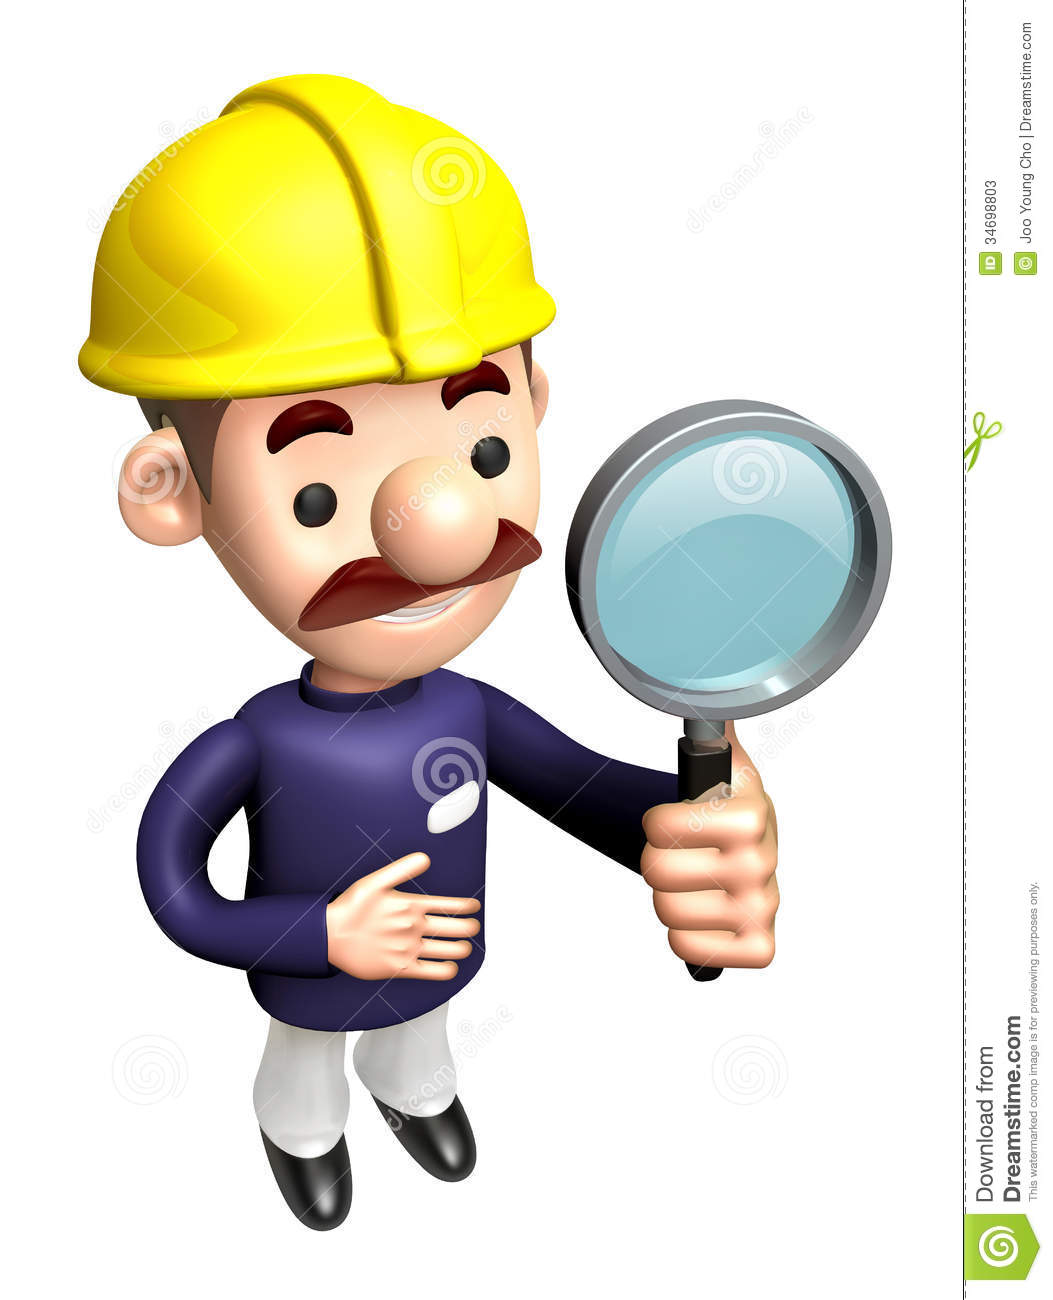 3D Construction Site Man Mascot Examine A With Magnifying Glass.